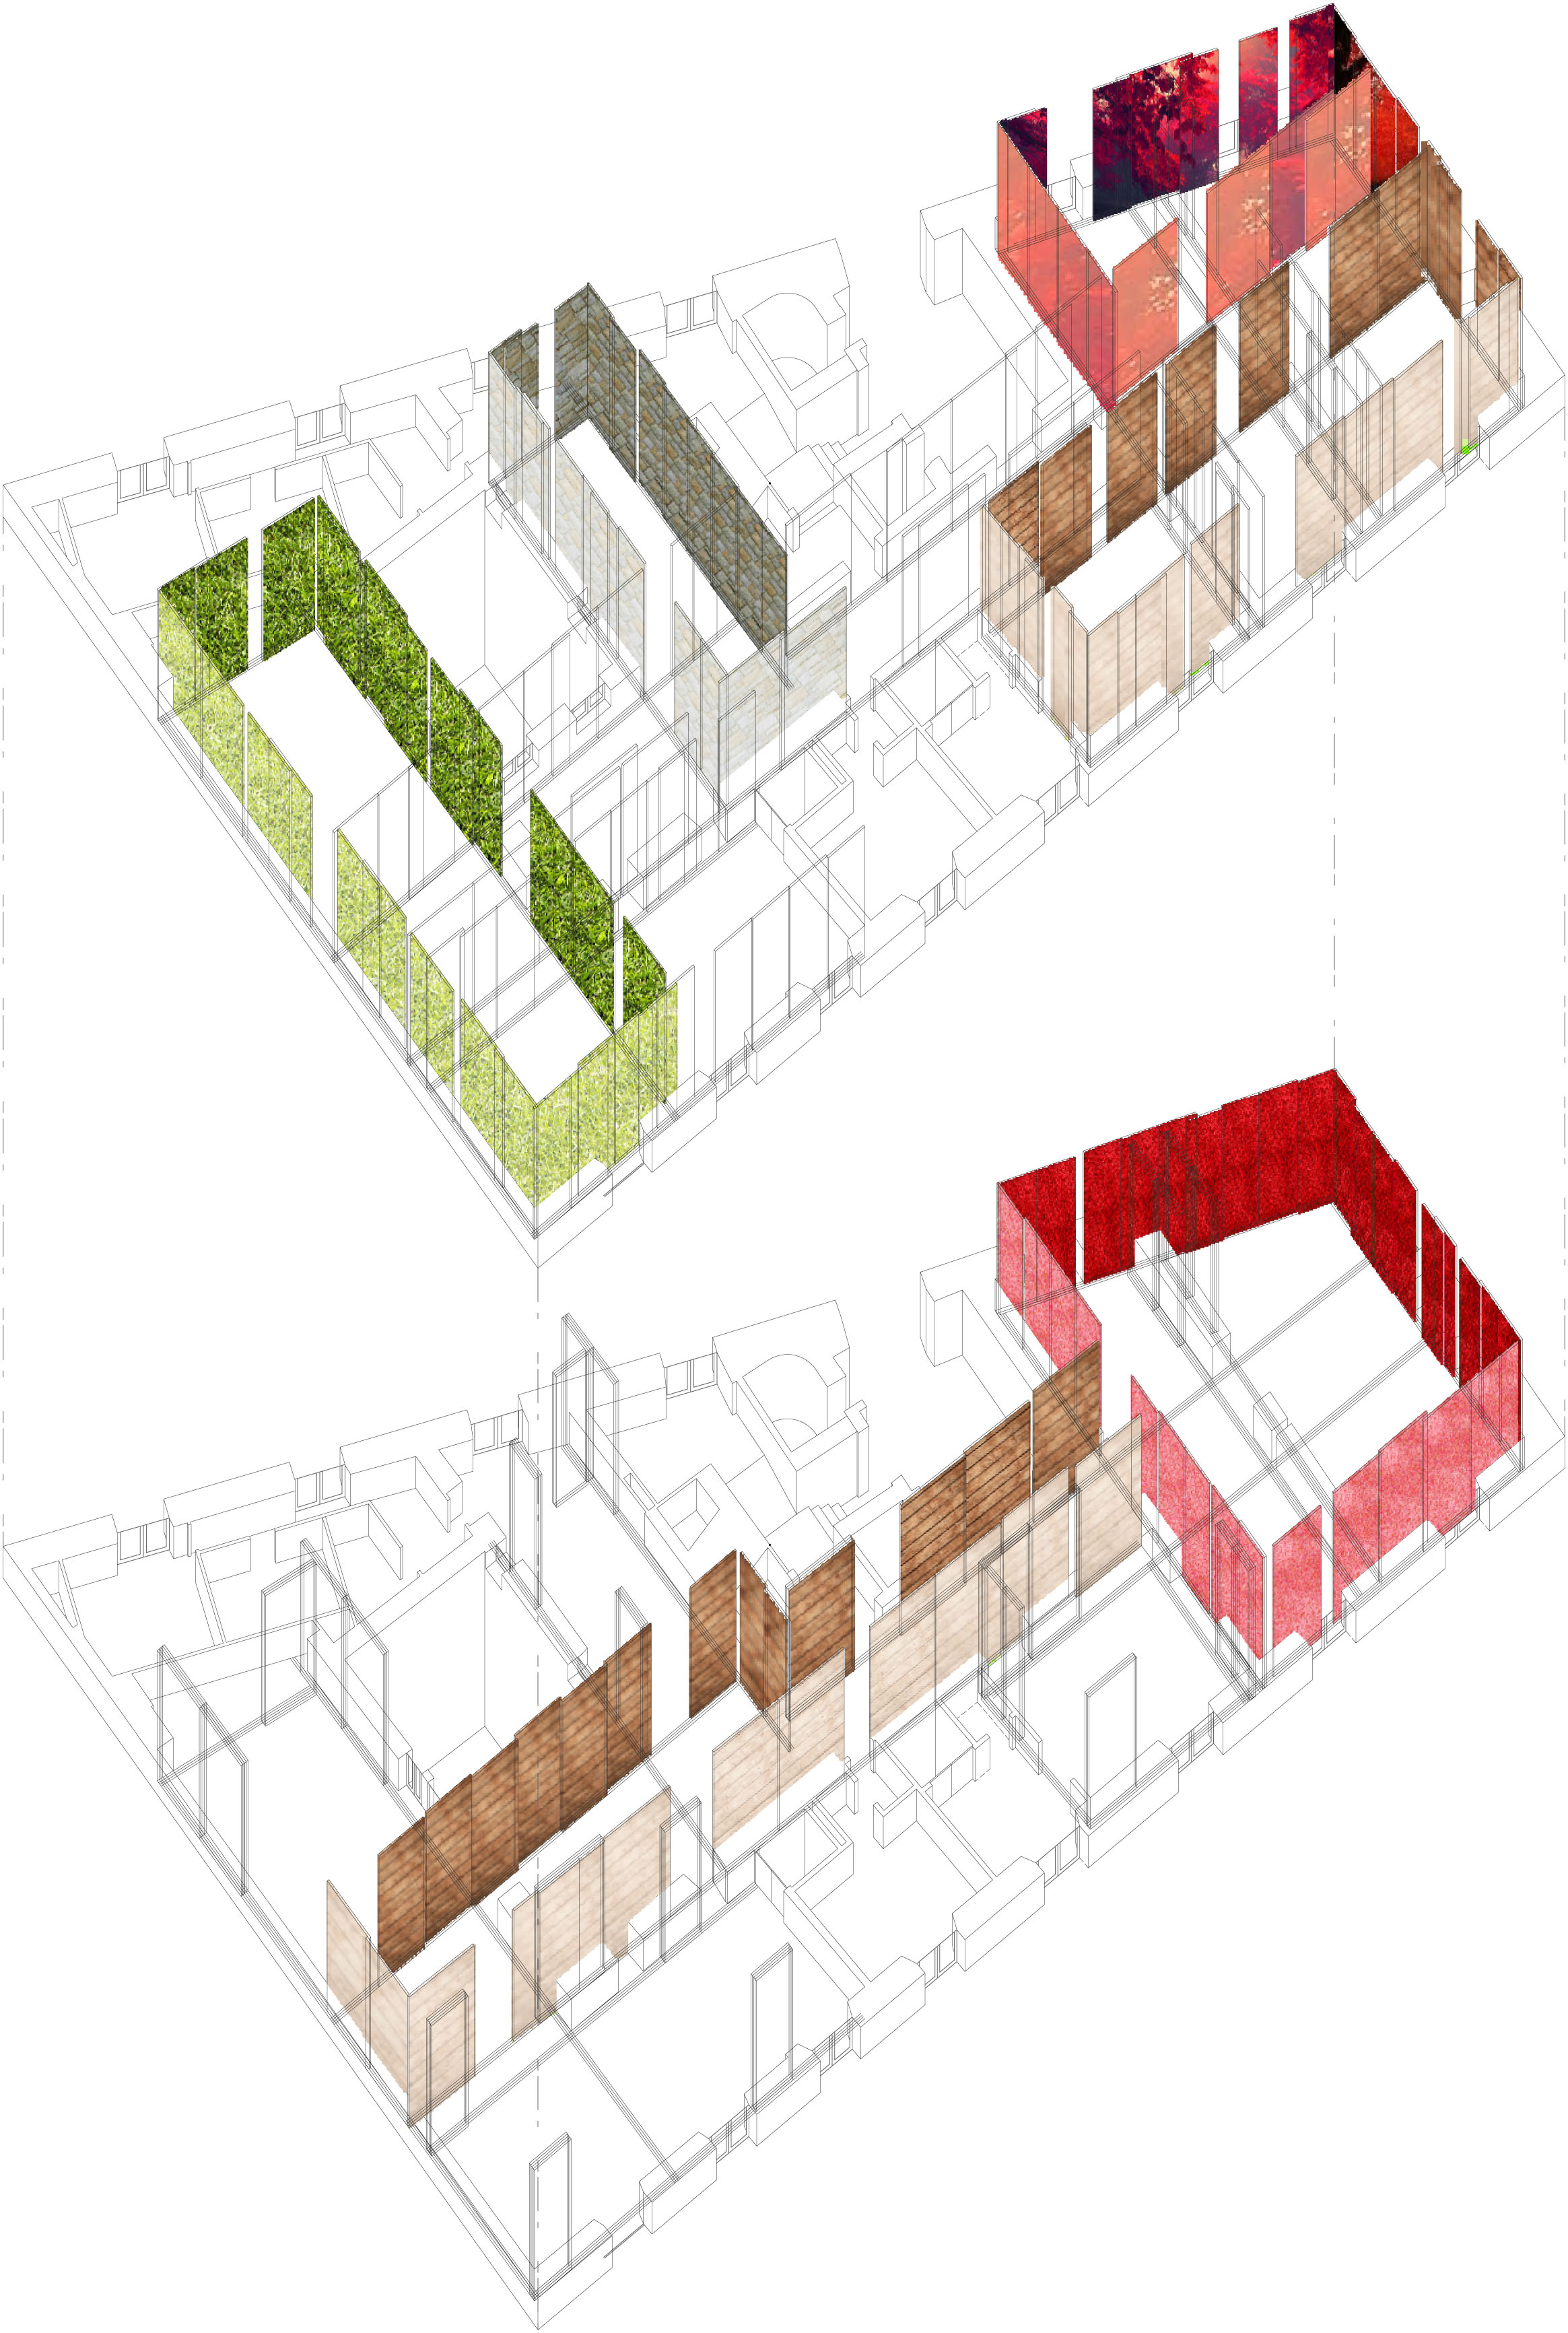 Axonometric view